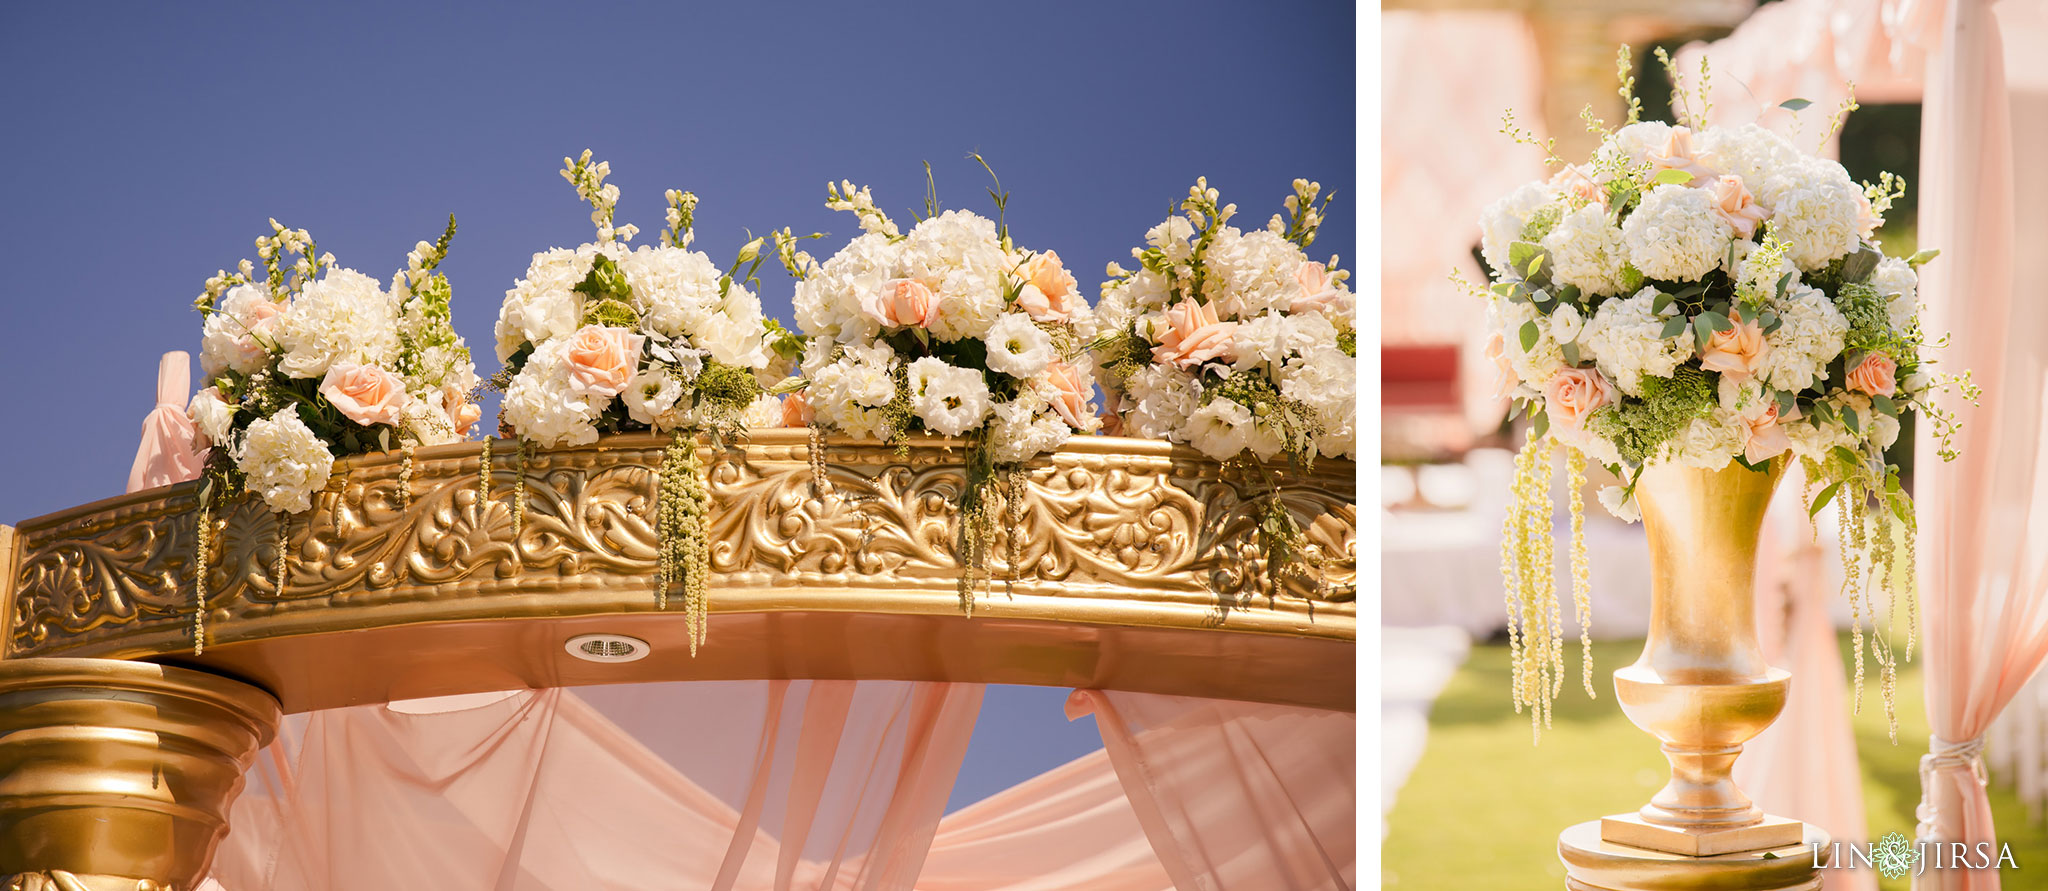 020 sherwood country club indian wedding ceremony photography